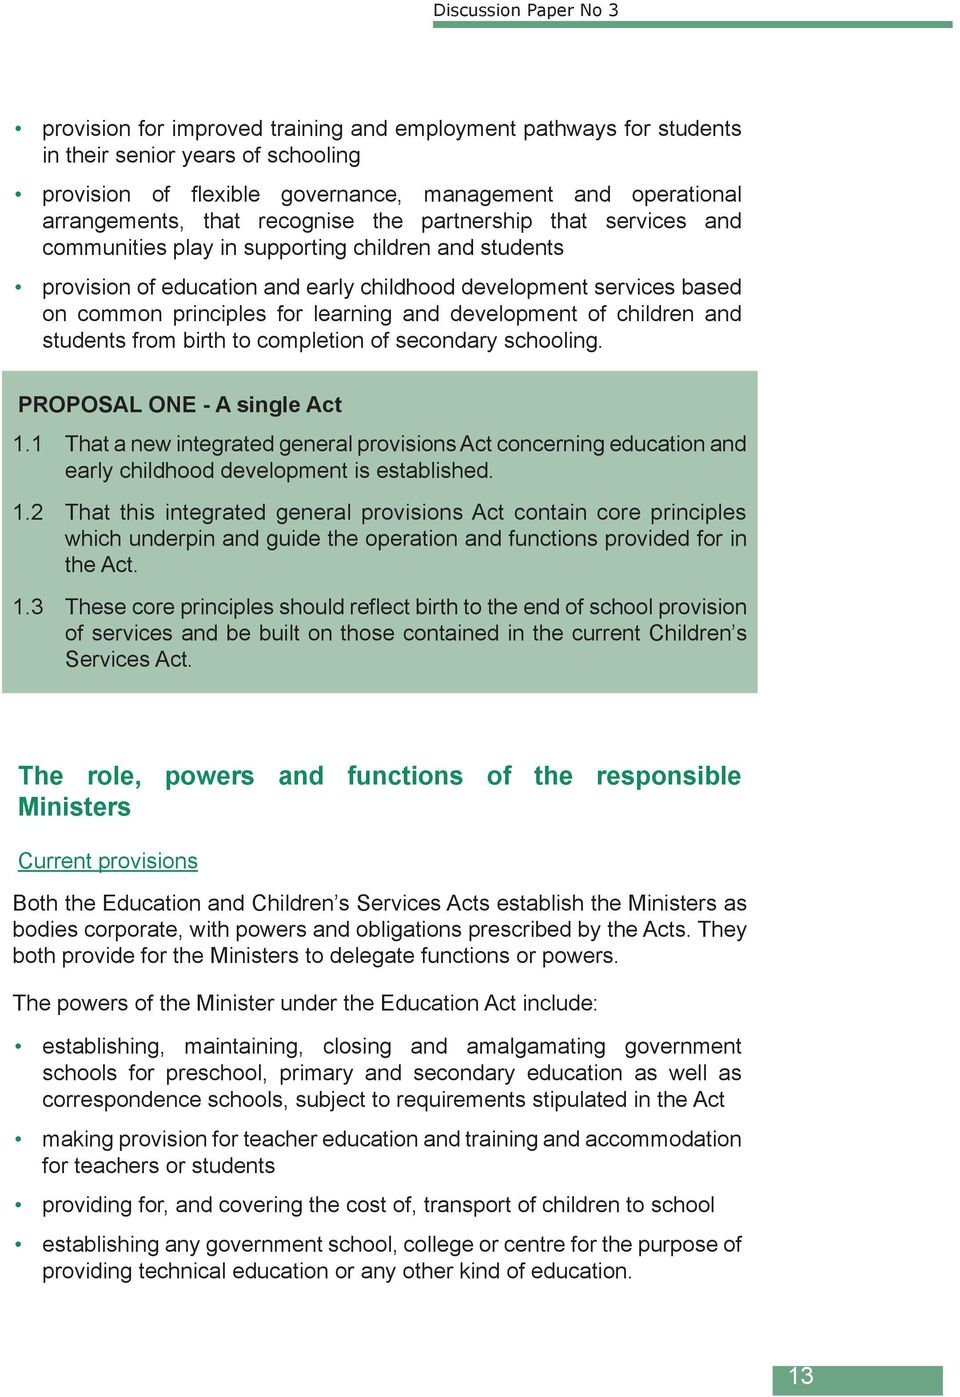 development of children and students from birth to completion of secondary schooling. PROPOSAL ONE - A single Act 1.